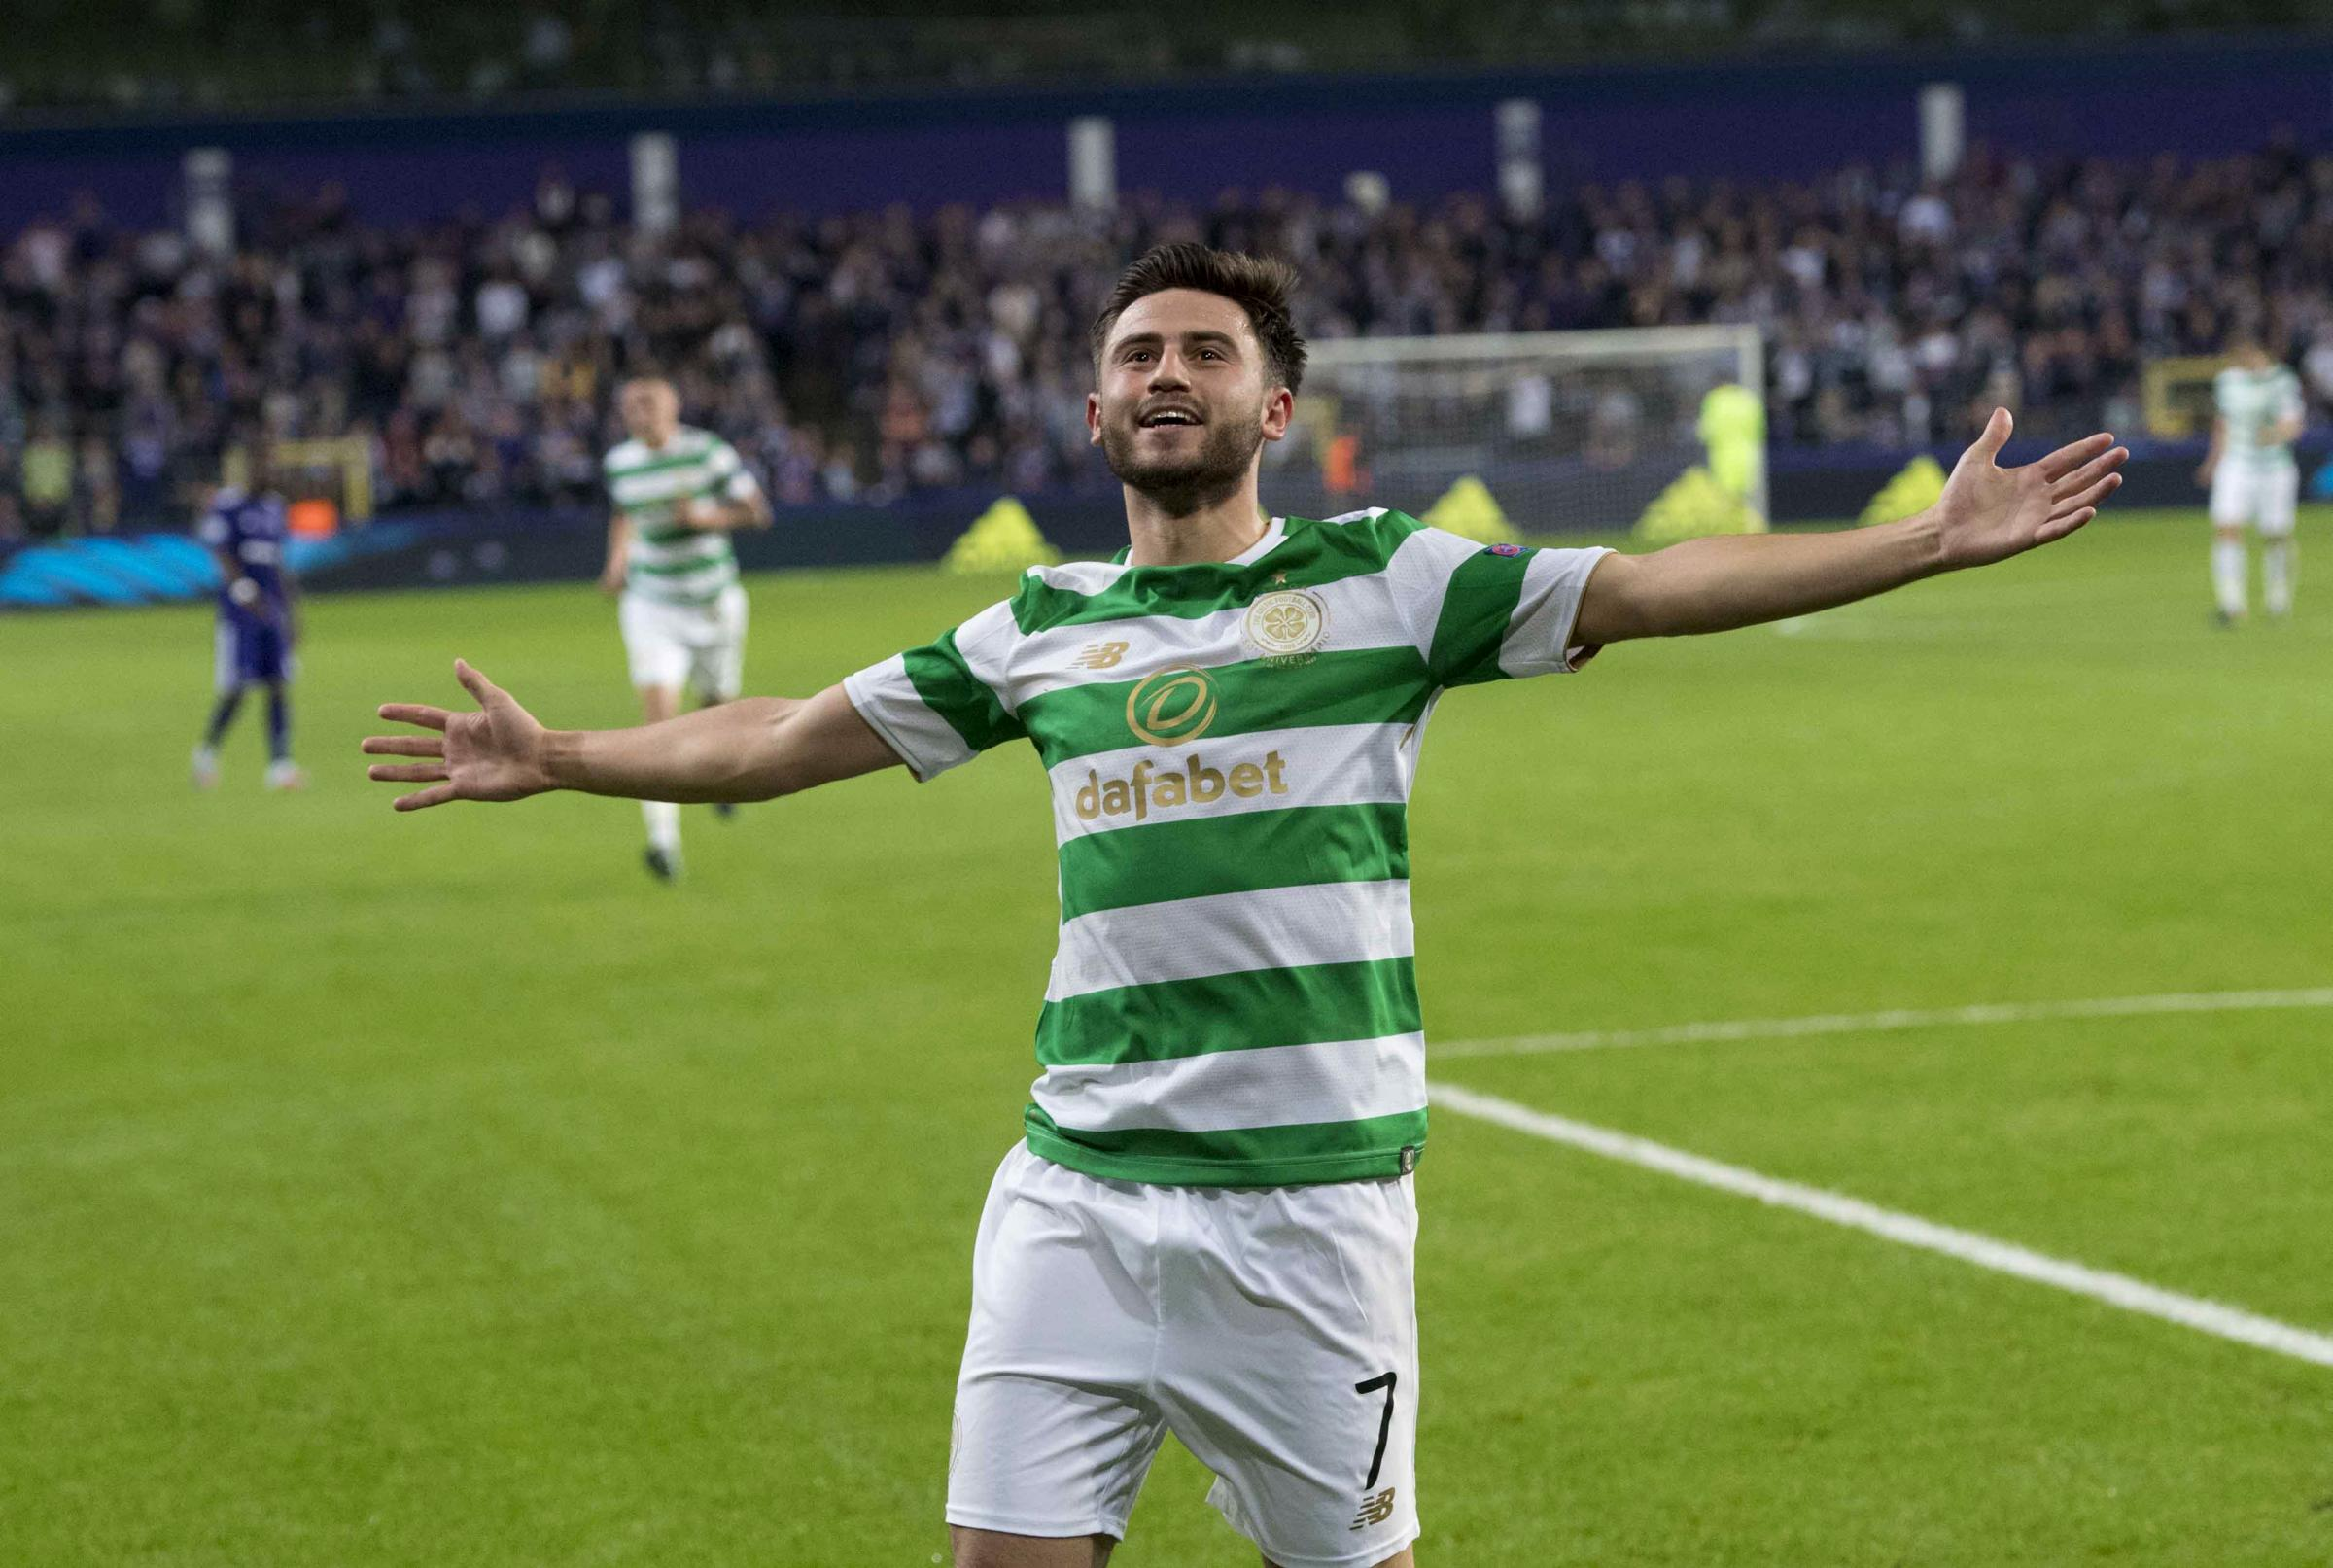 Celtic's Patrick Roberts celebrates his goal against Anderlecht last week in the UEFA Champions League